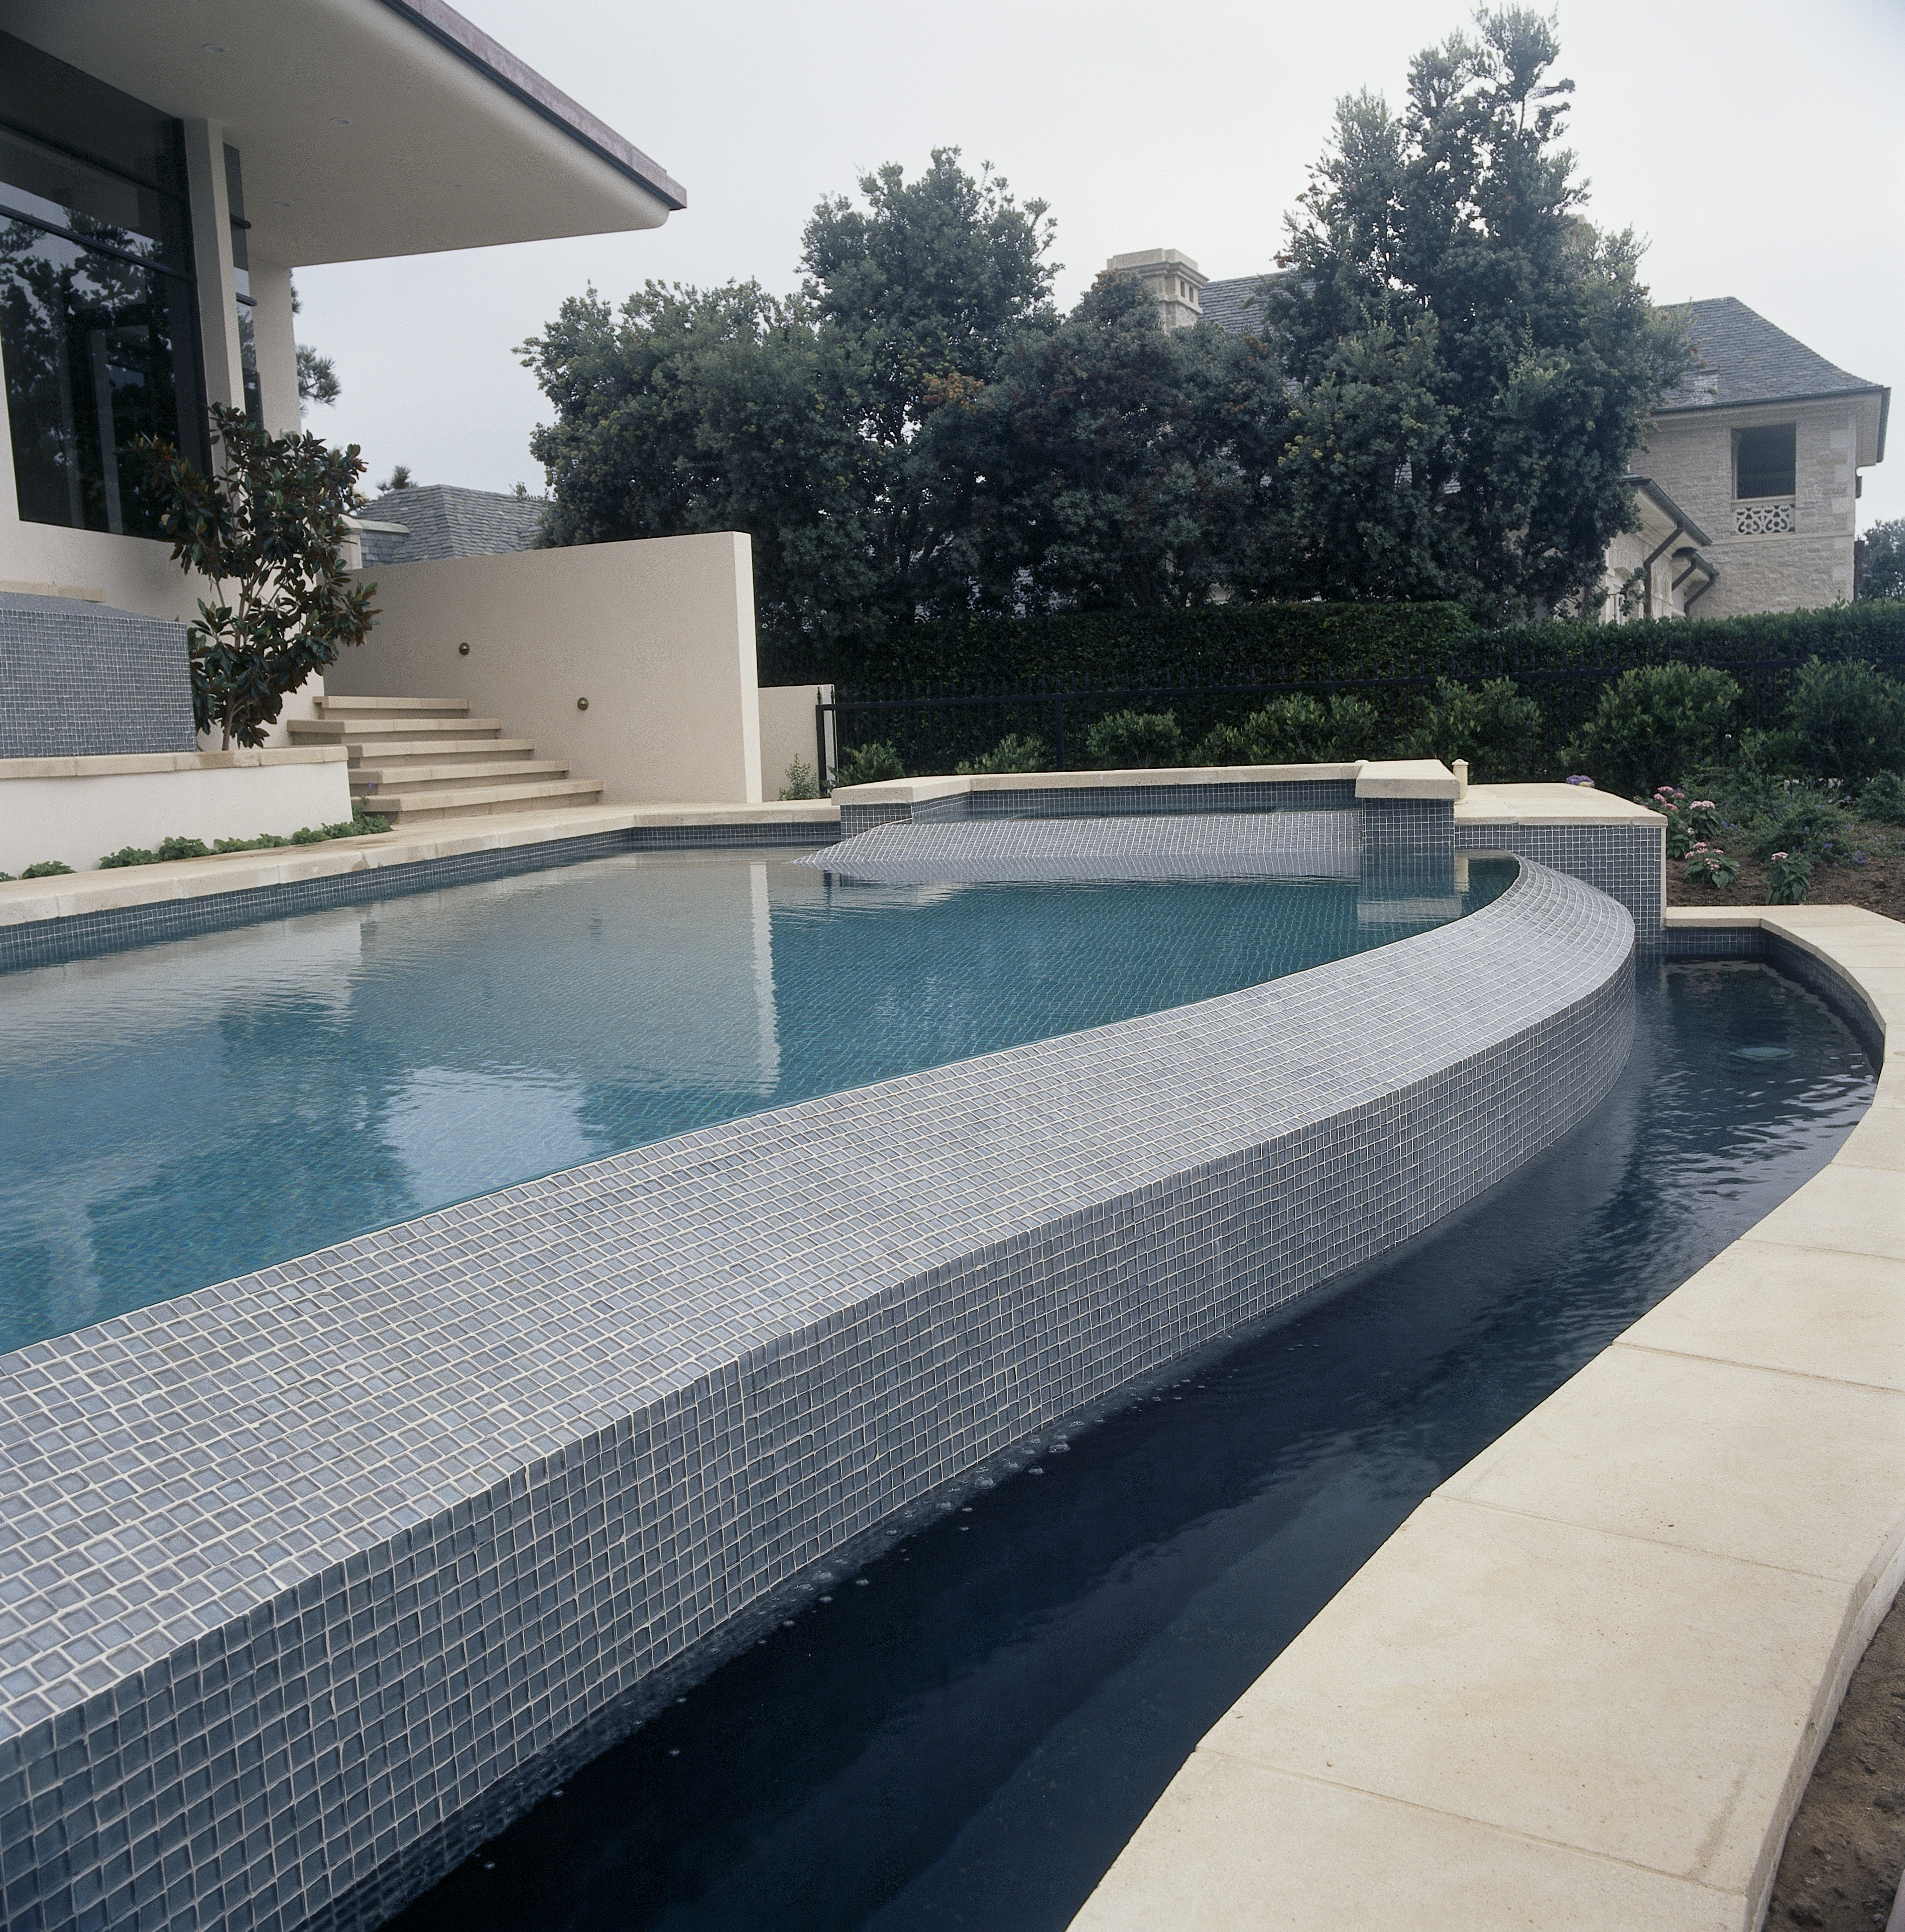 Pool Tiles Pool Tile Designs Westside Tile And Stone